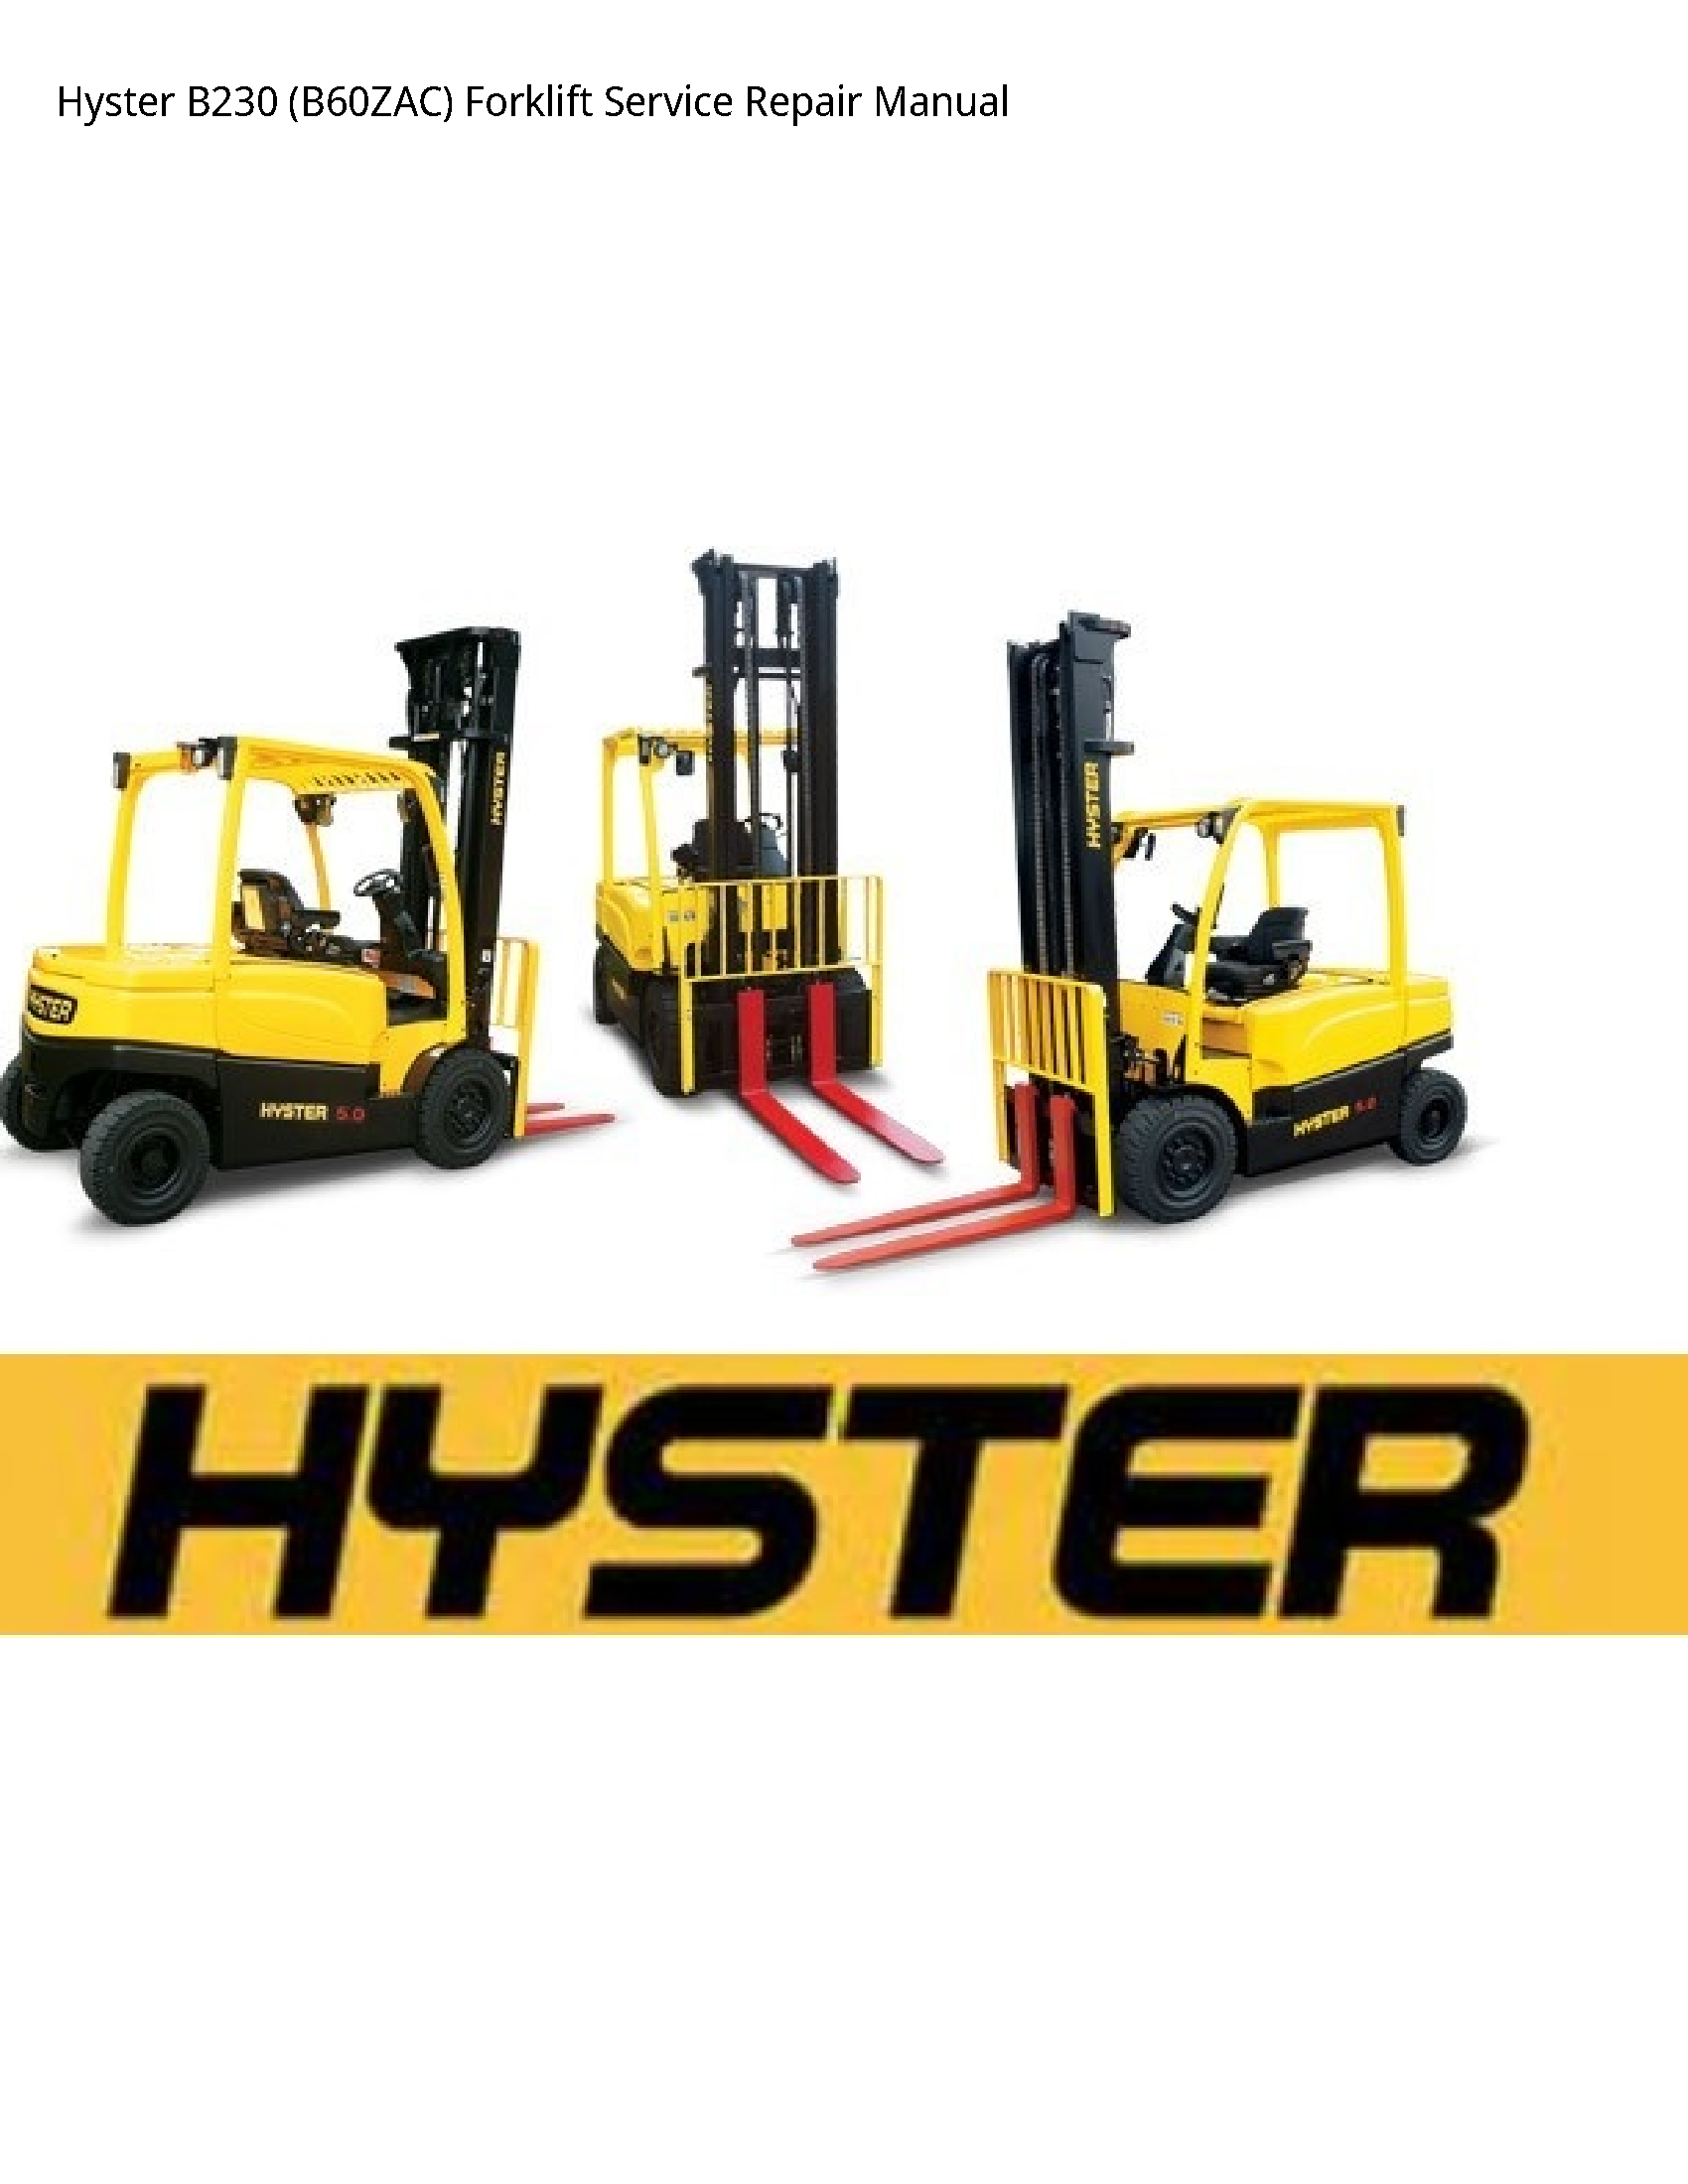 Hyster B230 Forklift manual